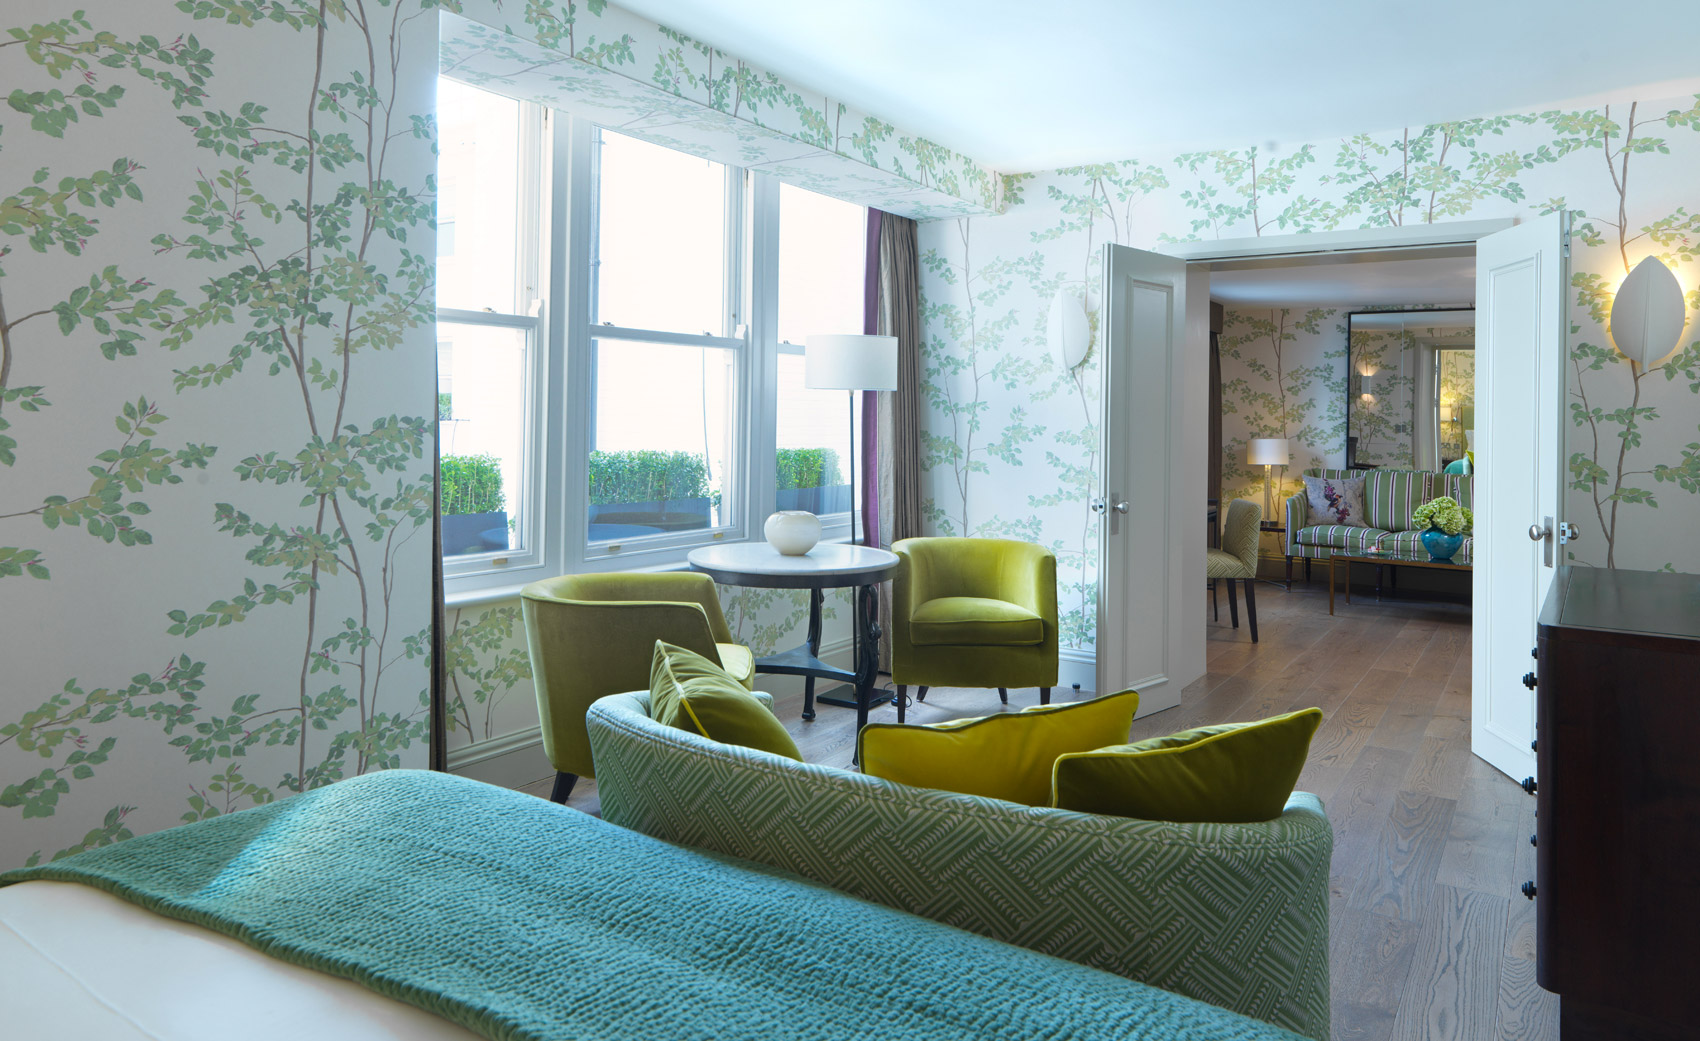 Brown's Hotel Launches Two New Olga Polizzi Designed Suites 4